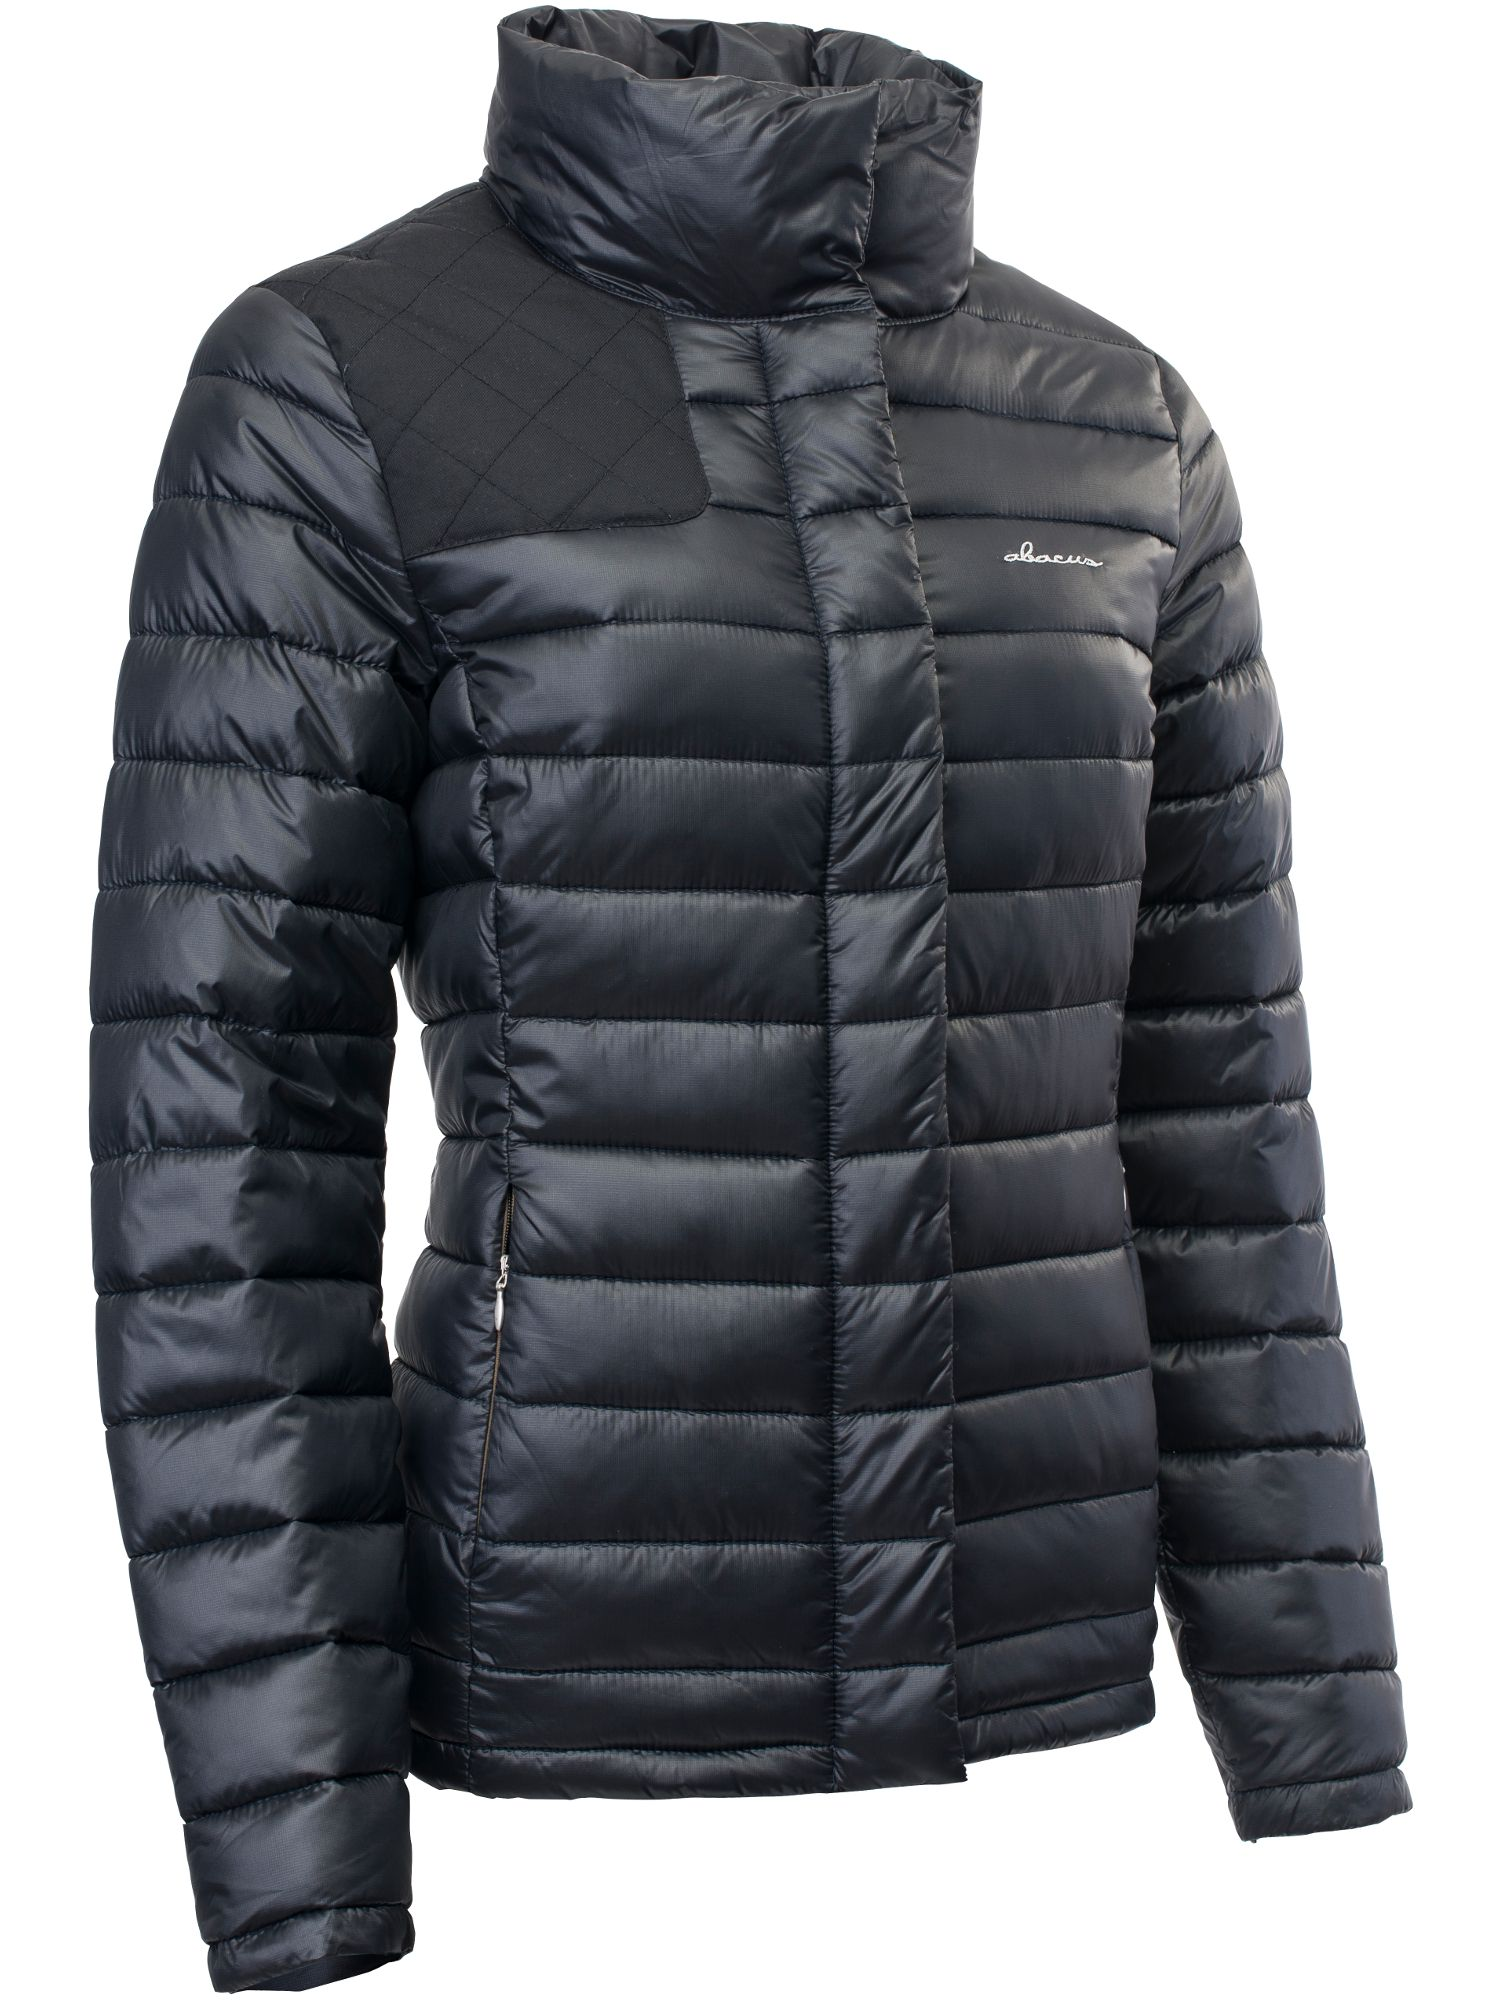 Abacus Cornwall Downlook Jacket, Black